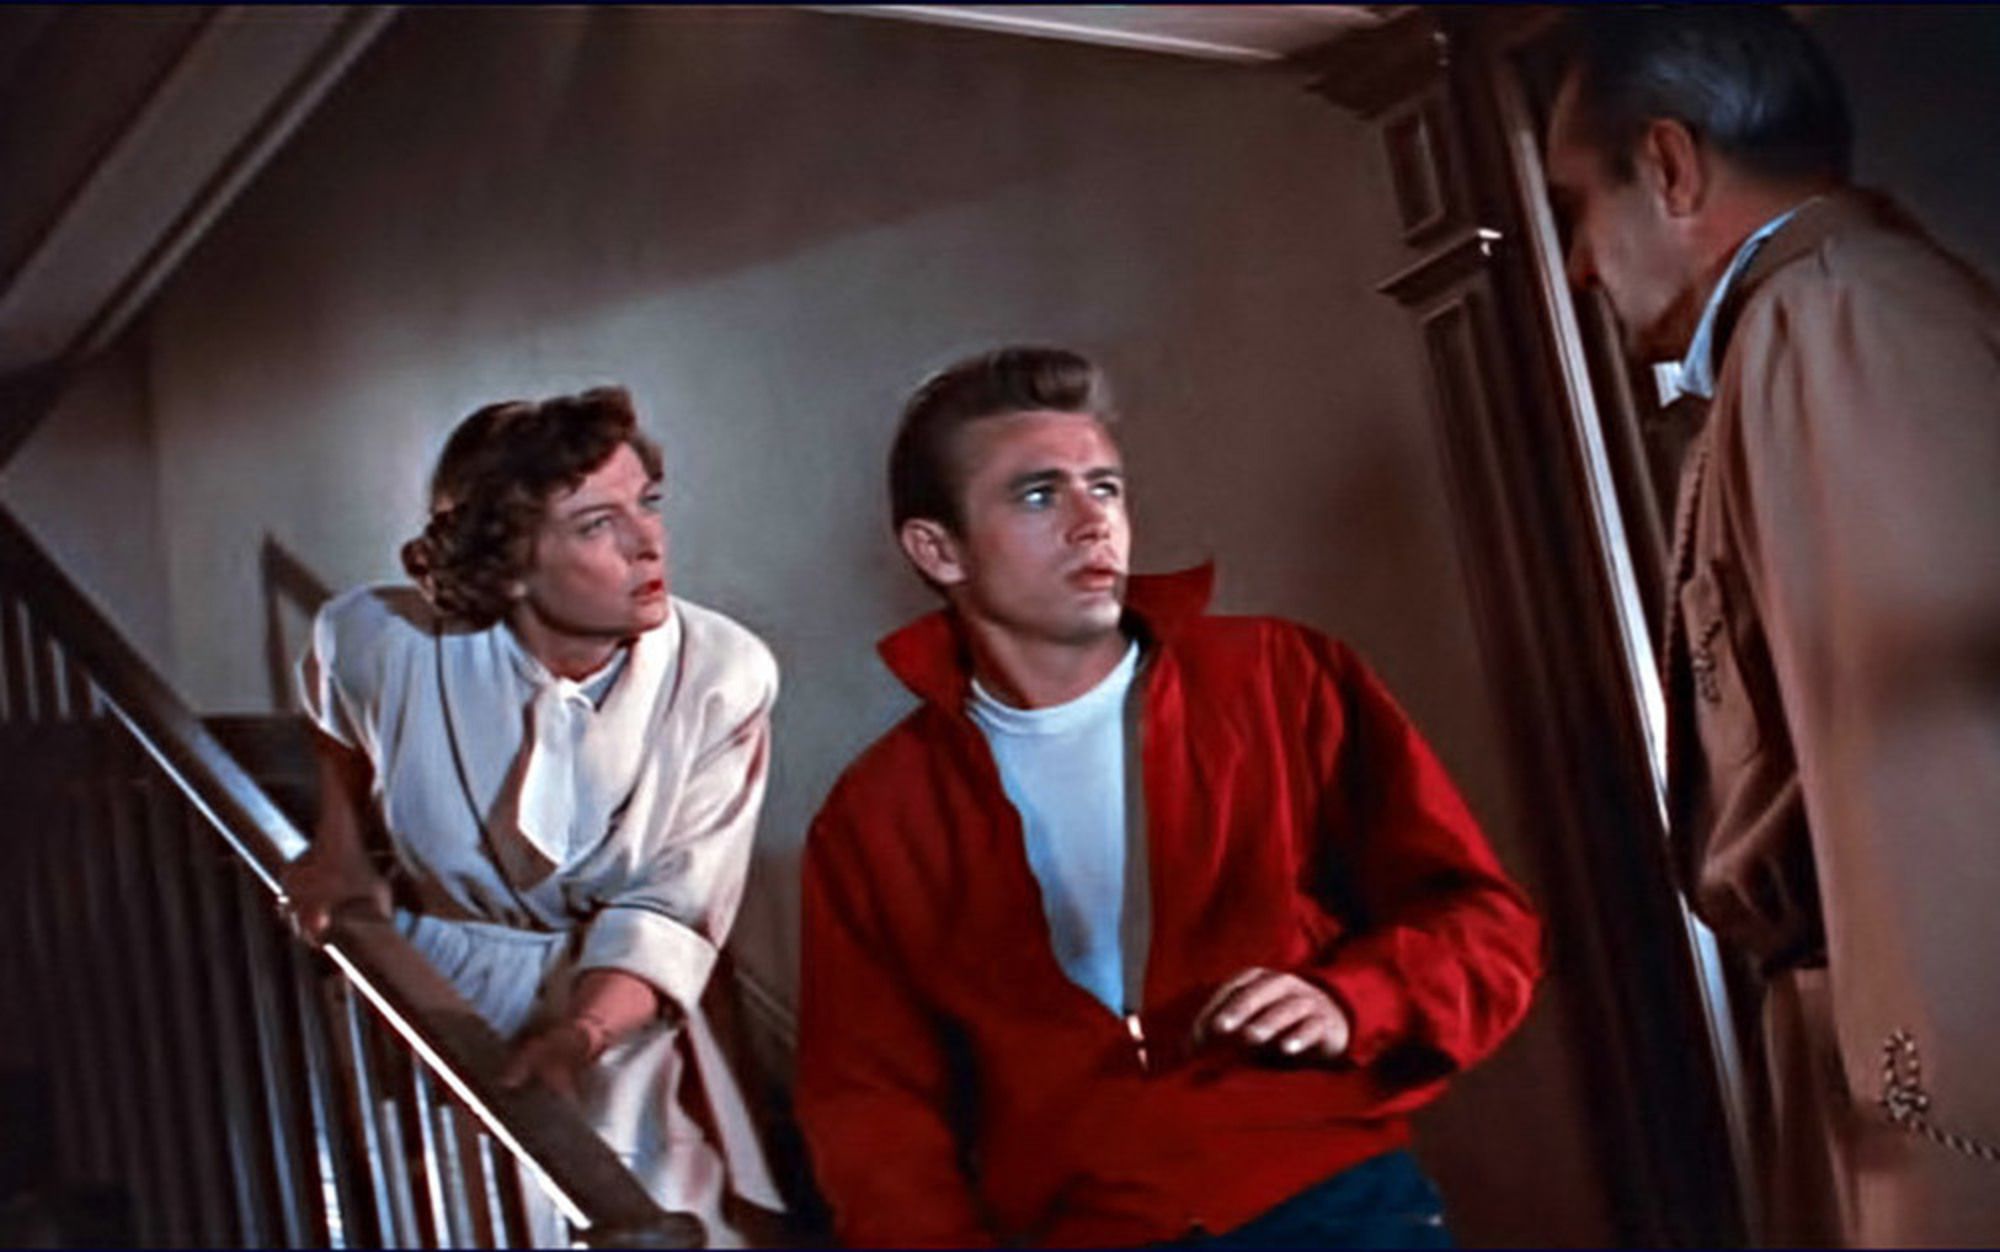 rebel without a cause essays Rebel without a cause symbolism essaycolors and rebel without a cause colors are everywhere in our world in the world of jim stark in the movie rebel without a cause, colors provide insight into the feelings of the character, the tone of the scene, and insight into what will happen next.